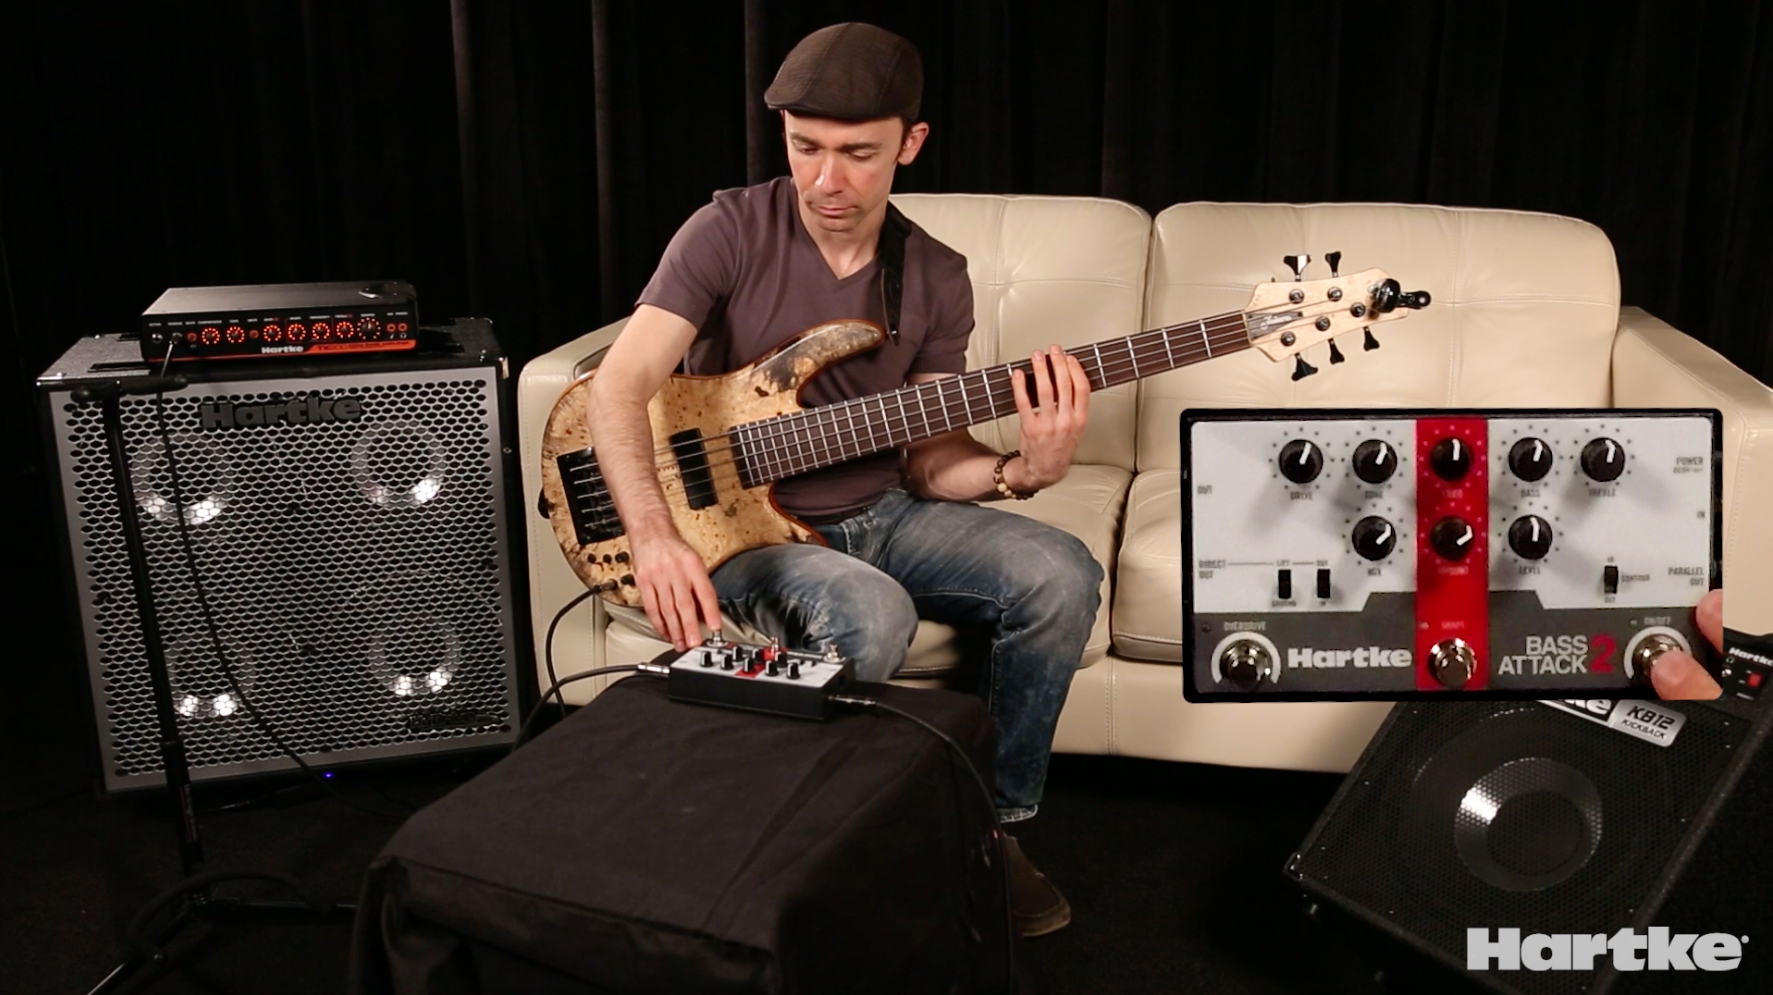 DEMO VIDEOS: John Ferrara/Bass Attack 2